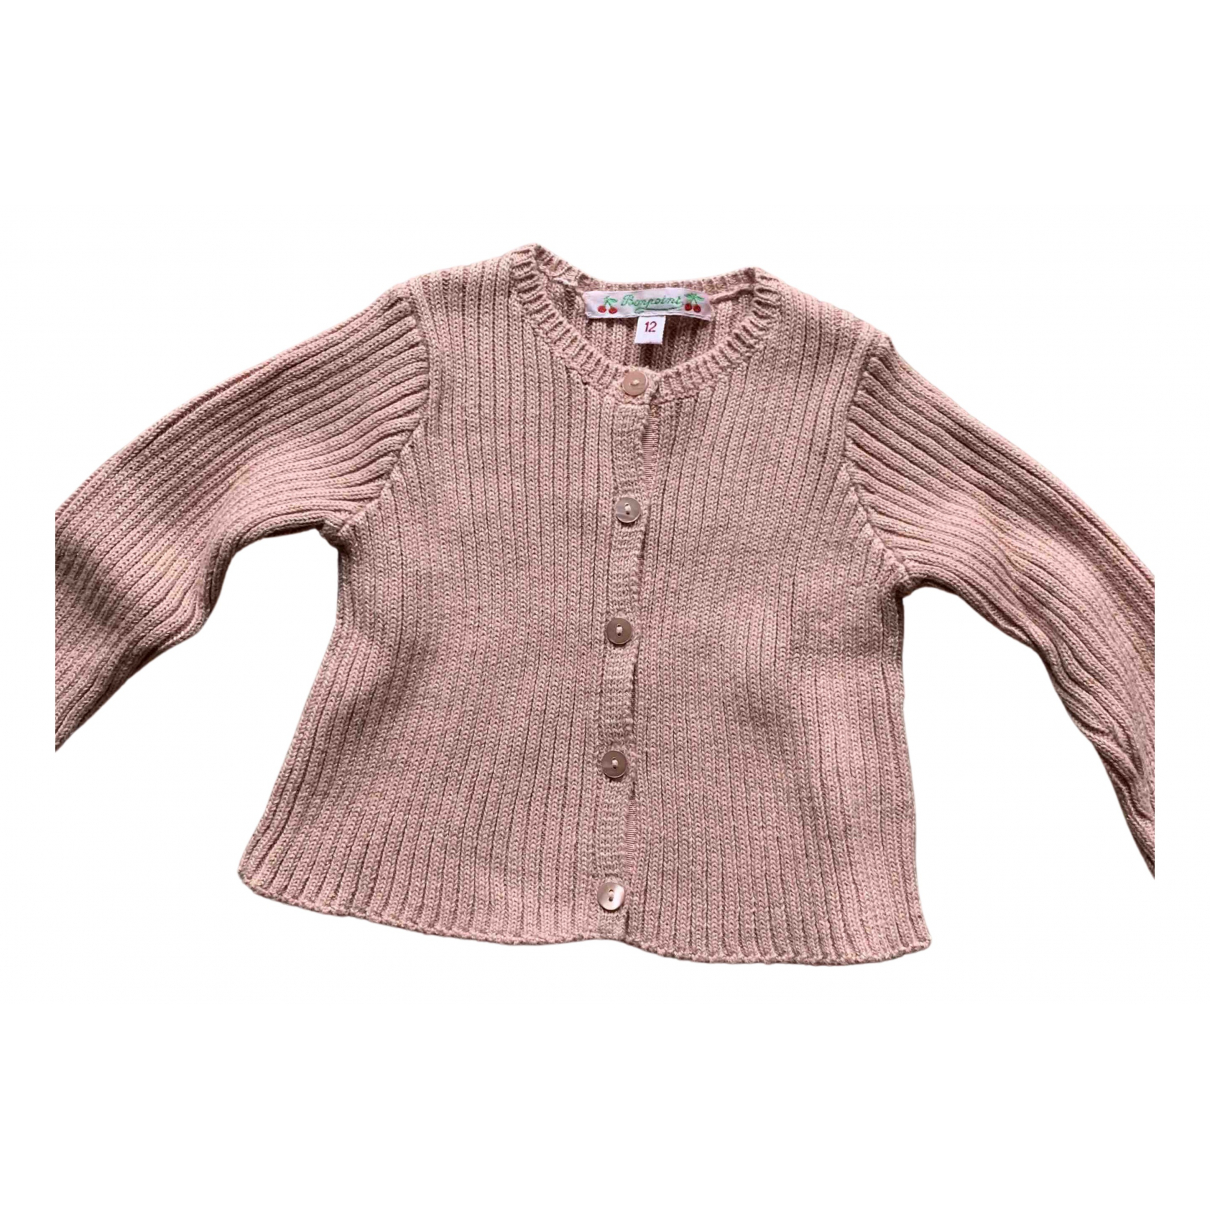 Bonpoint N Pink Cotton Knitwear for Kids 12 months - up to 74cm FR